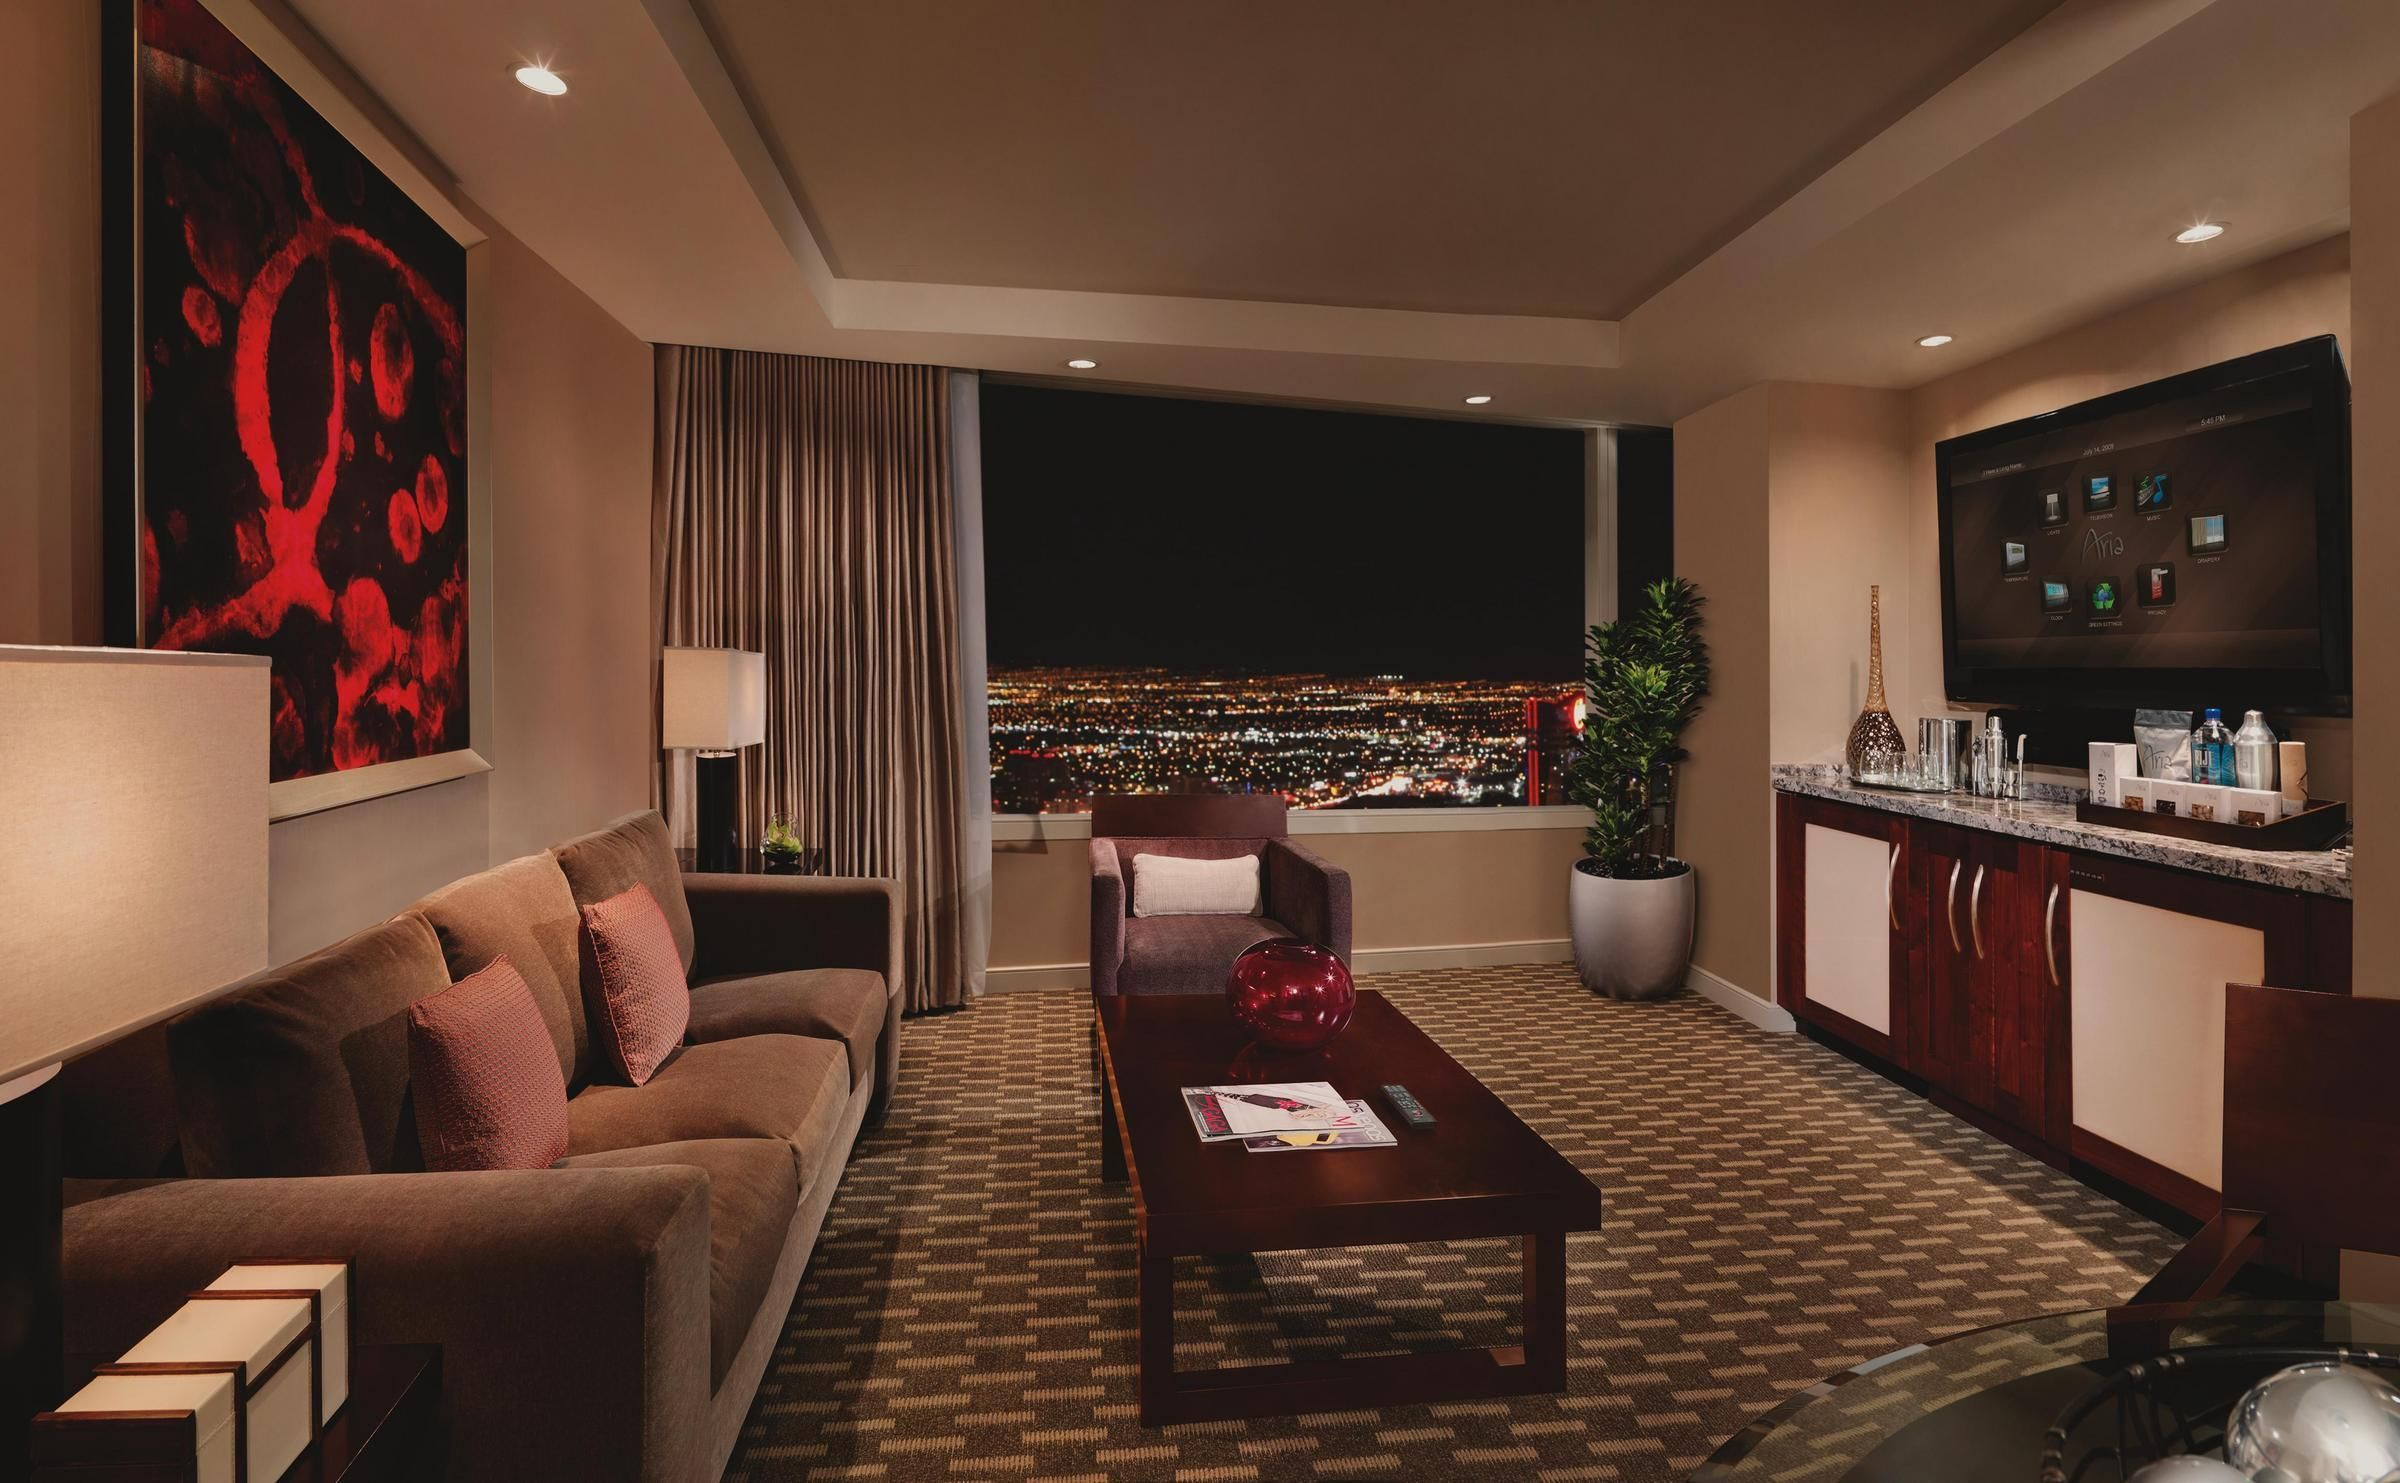 Arias tower suite offers an intimate living area with custom